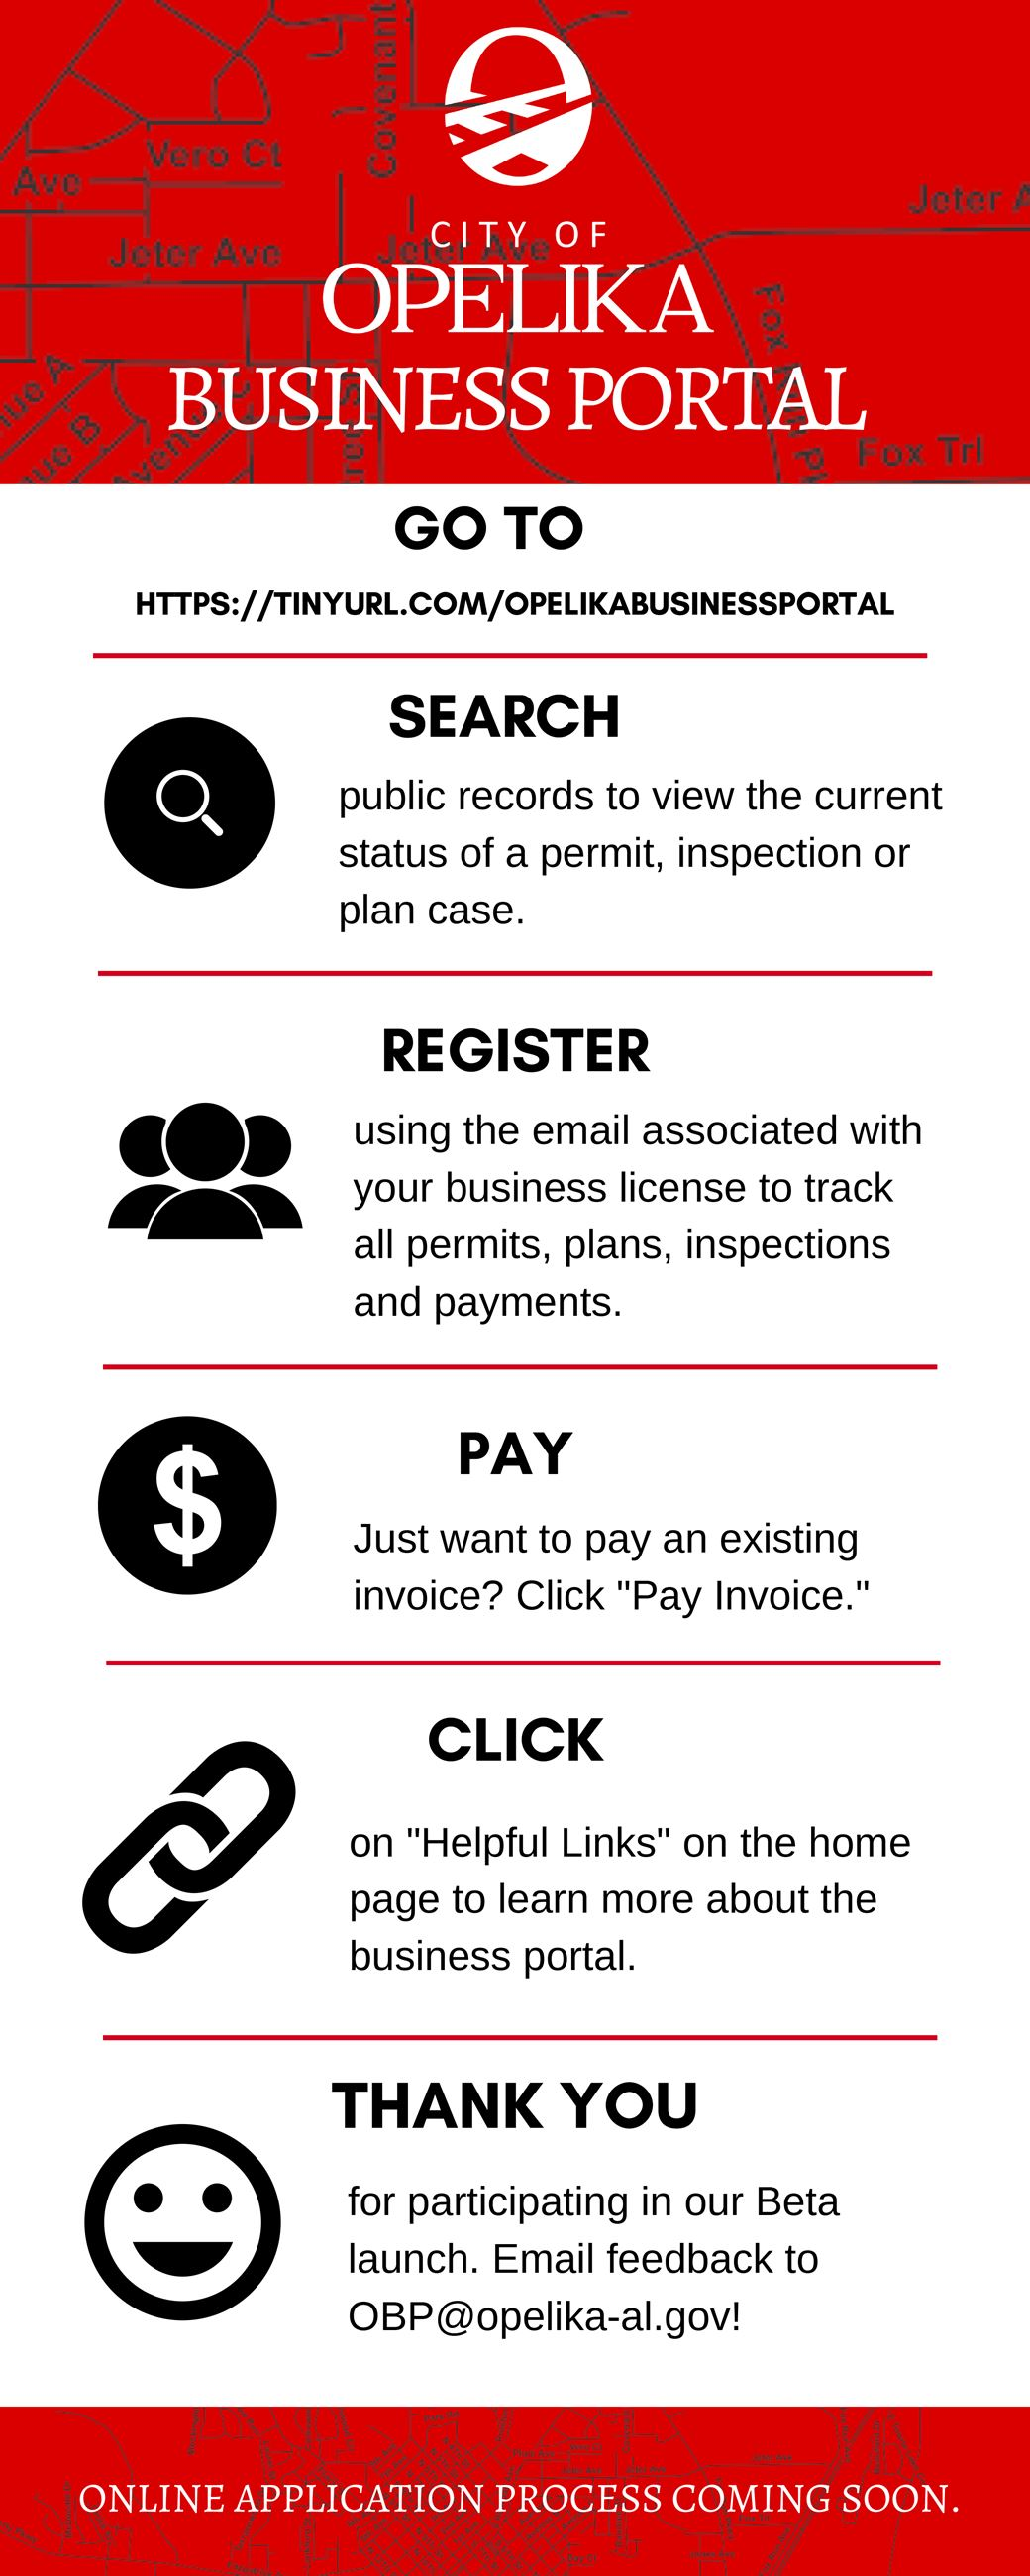 Opelika Business Portal Infographic